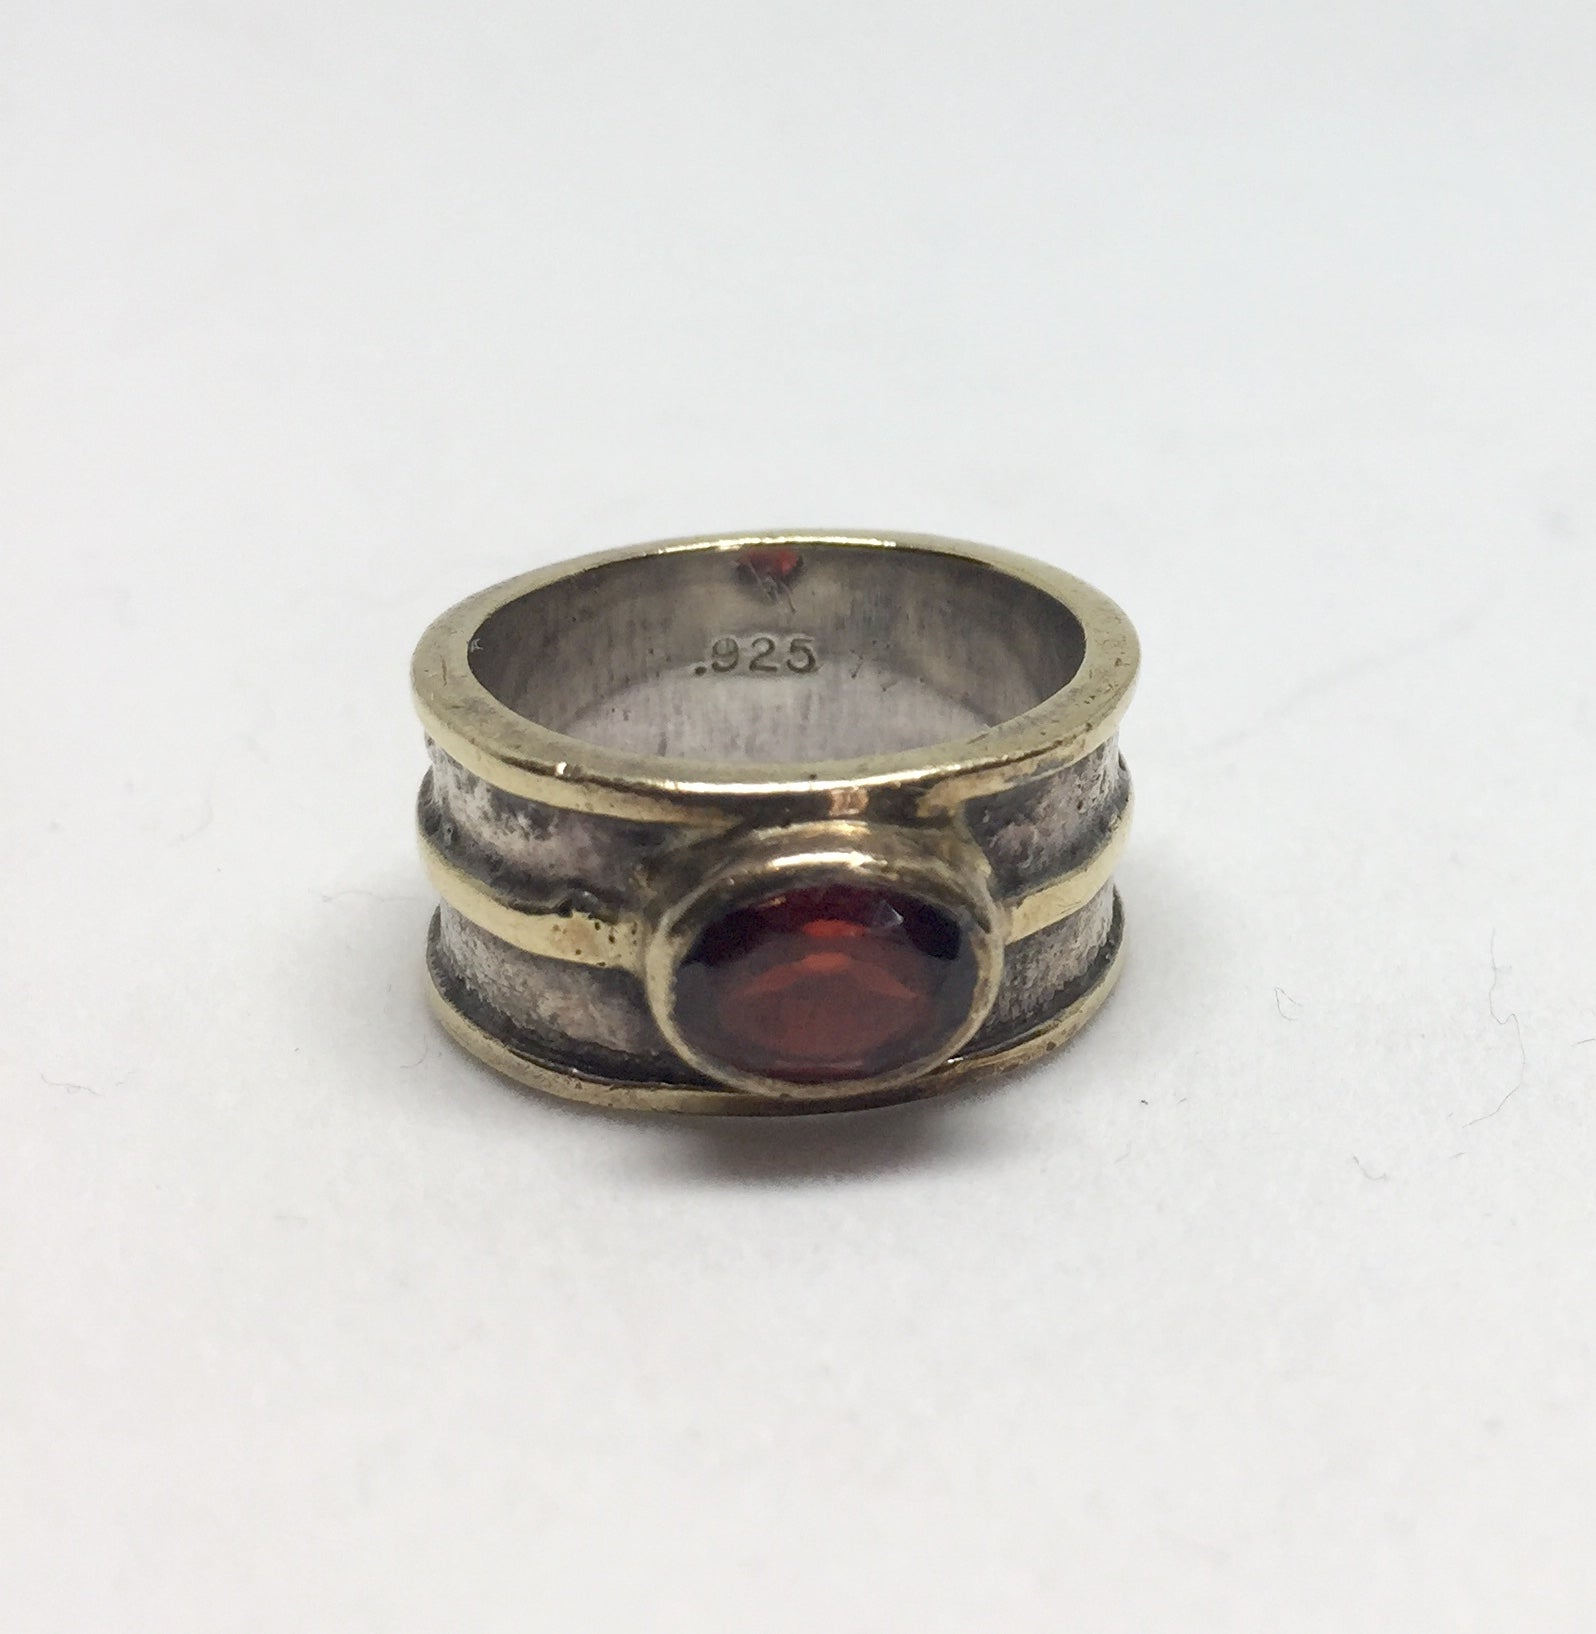 Modernist Silver Gold Edge and Red Stone Ring